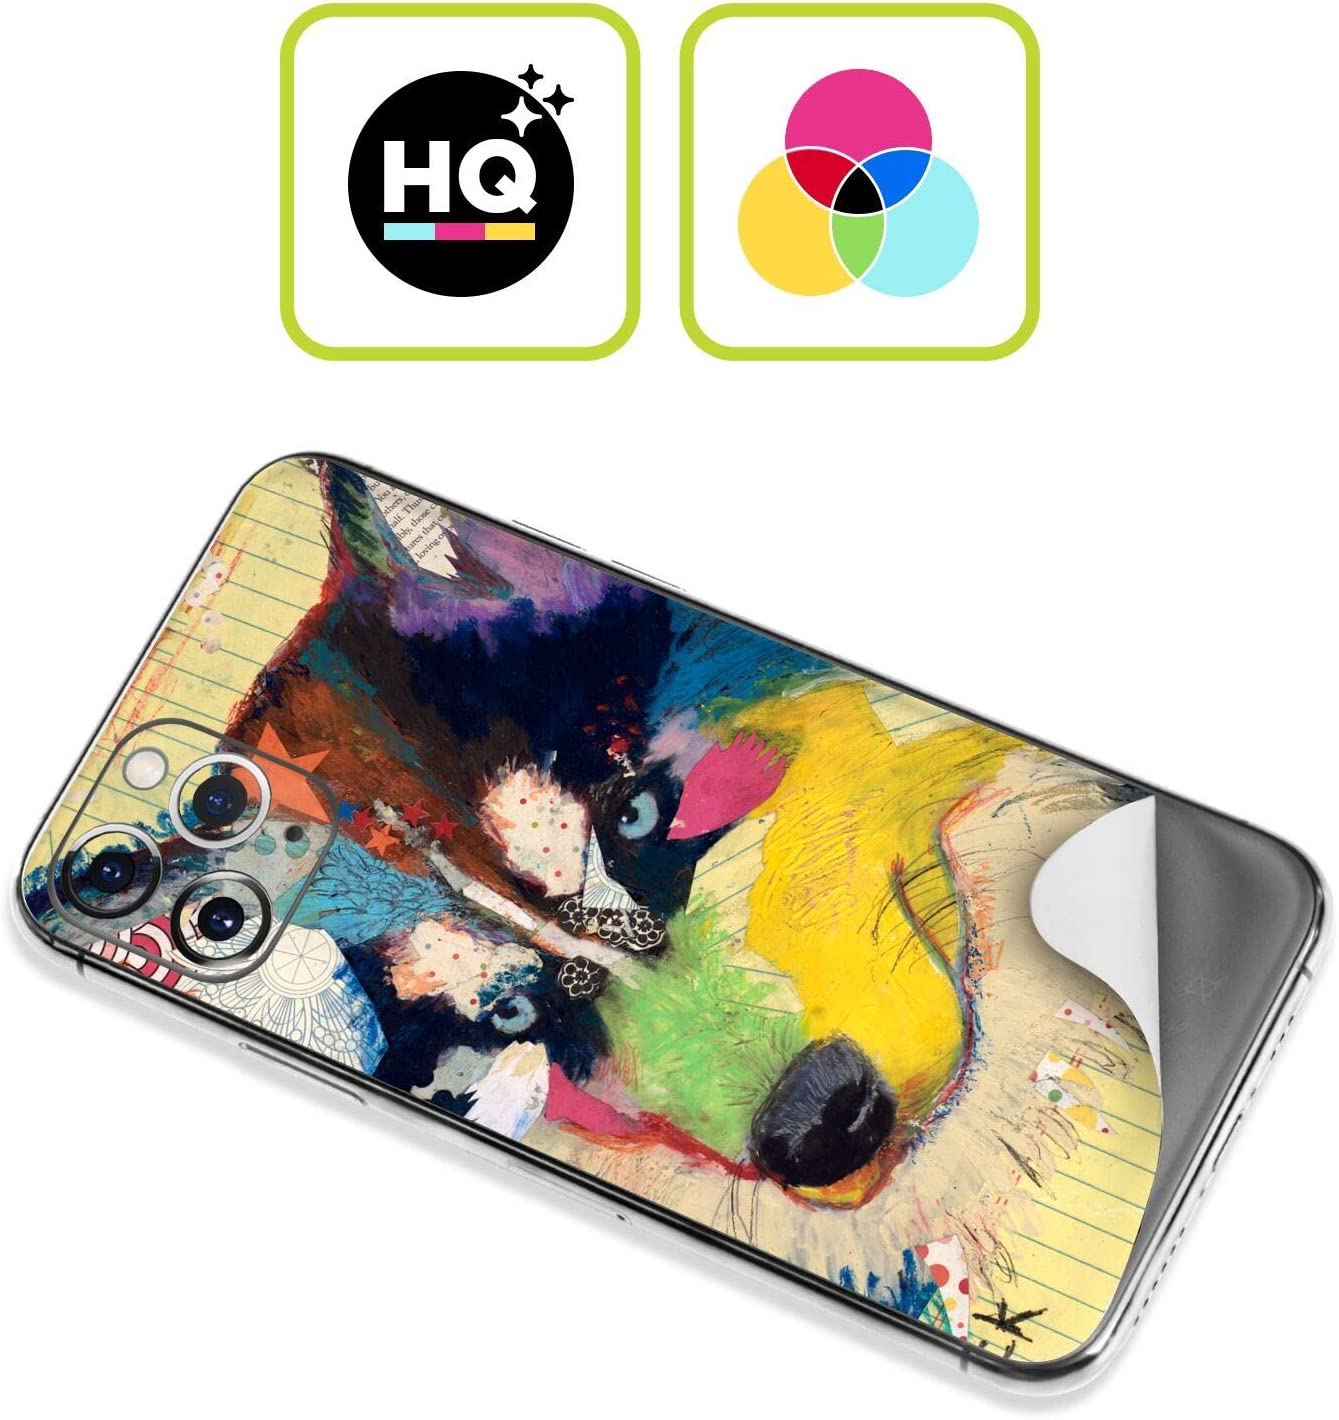 Head Case Designs Official Michel Keck Husky Dogs Glossy Vinyl Sticker Skin Decal Cover Compatible for Apple iPhone 7 Plus//iPhone 8 Plus